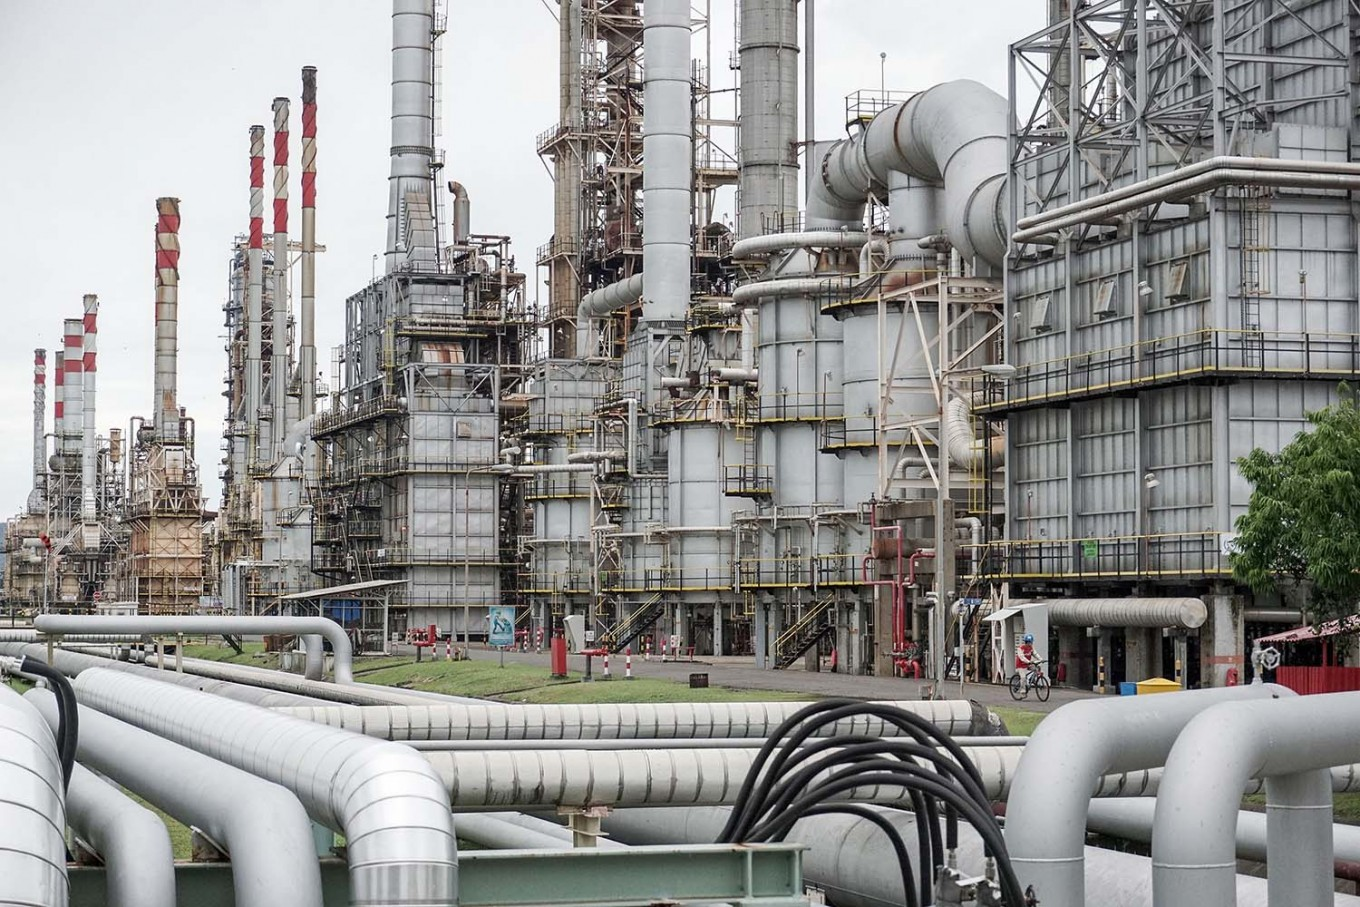 Pertamina may get accounting perk to ease burdens